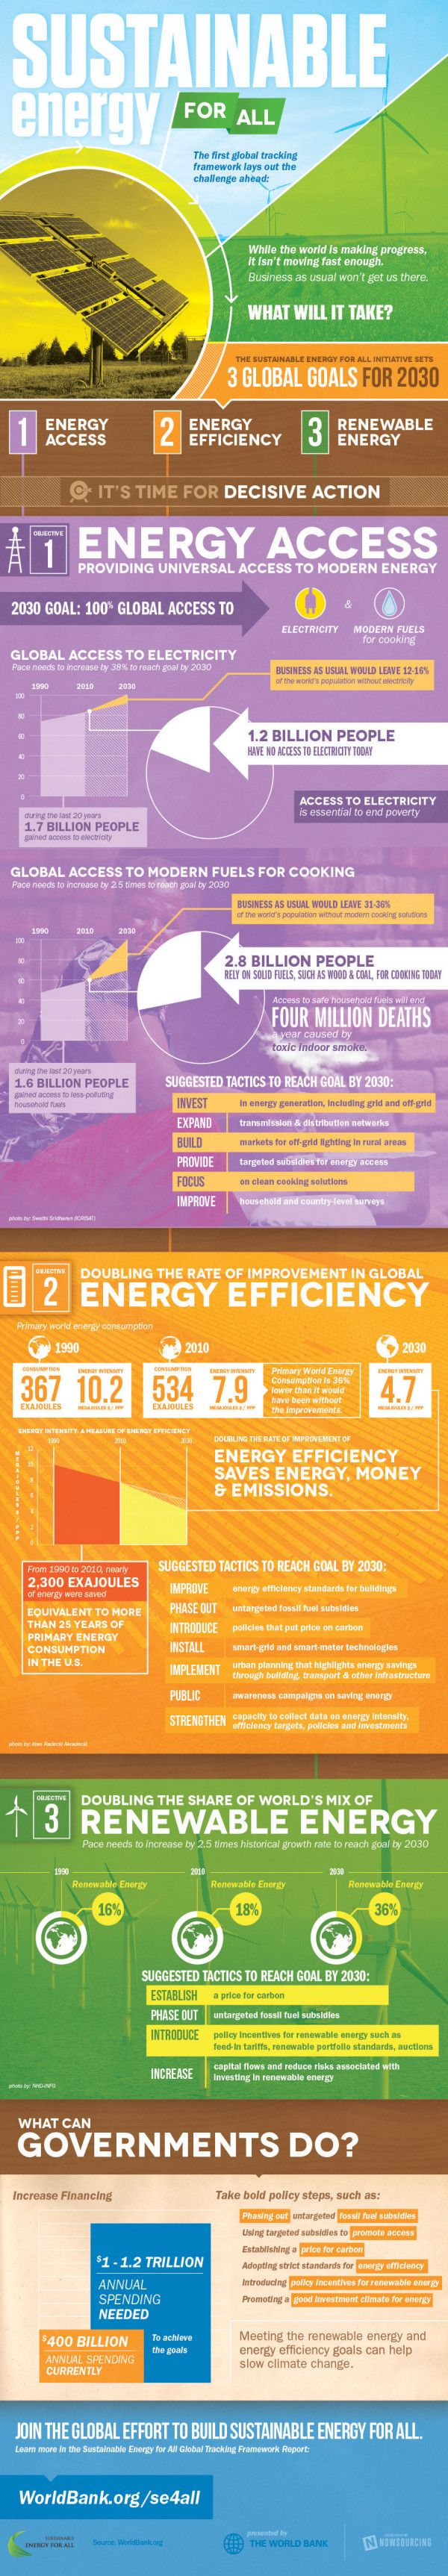 Sustainable energy for all [infographic]